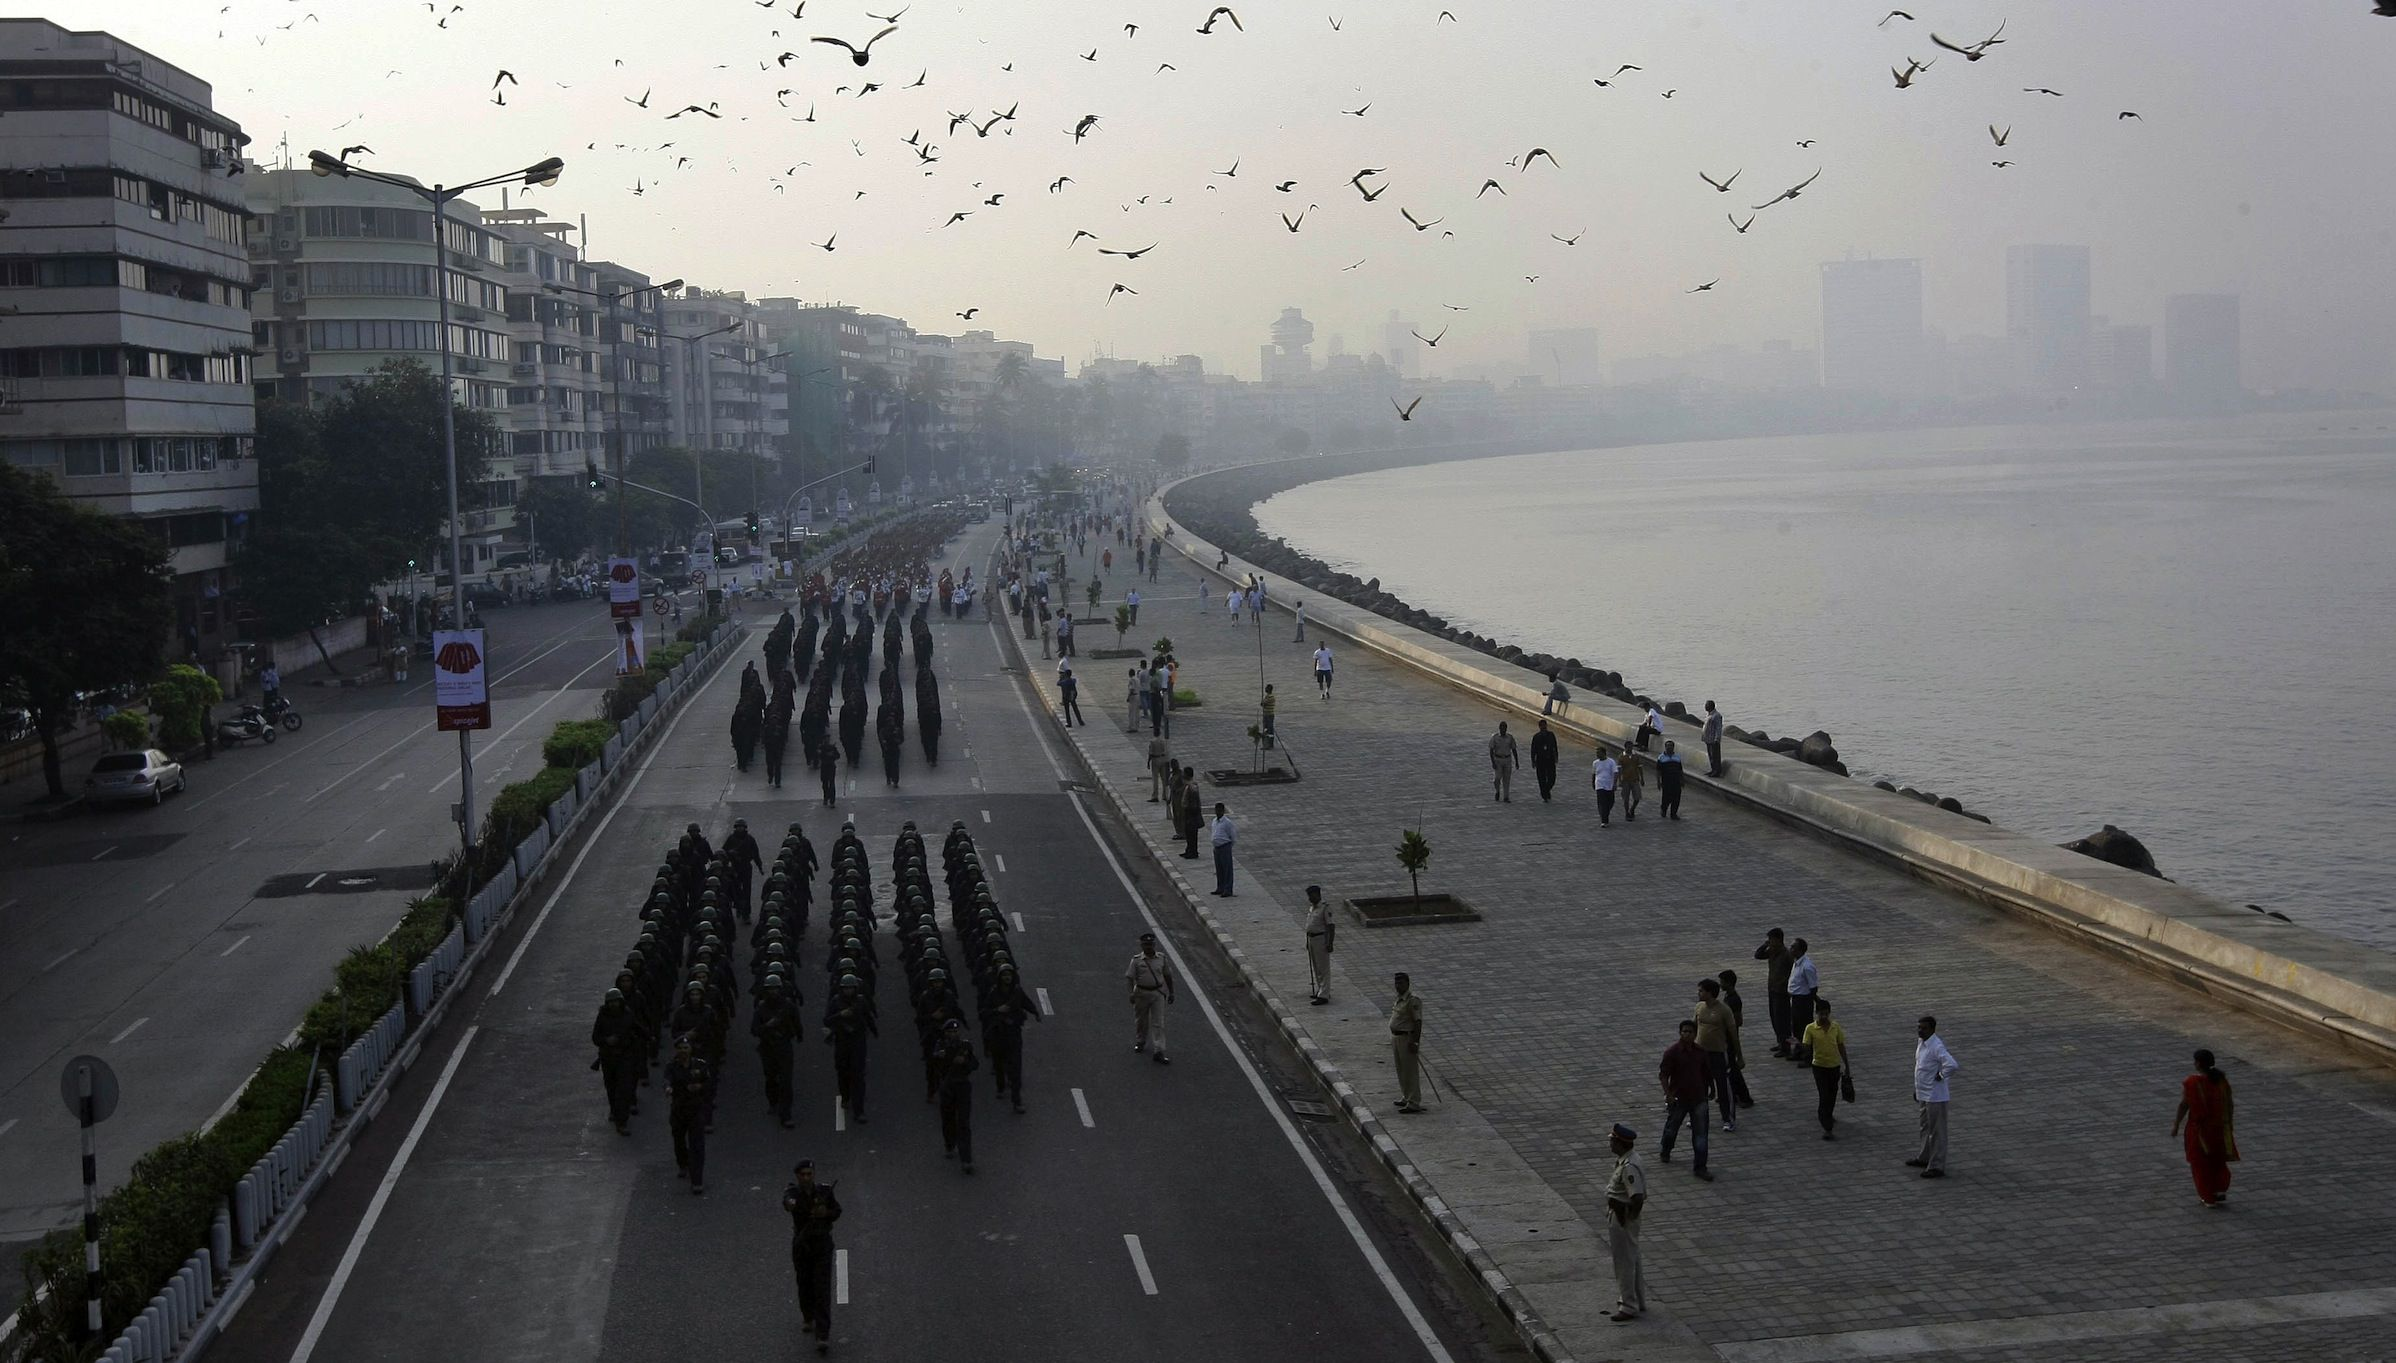 Police officers march in a parade along the seafront at Marine Drive, marking the first anniversary of the terror attack in Mumbai, India, Thursday, Nov. 26, 2009. A police parade bristling with new hardware and armored tanks, a mournful candlelight vigil and a blood donation drive brought Mumbai residents together Thursday as they remembered the city's worst terror attack a year ago that left 166 people dead. (AP Photo/Rajanish Kakade)